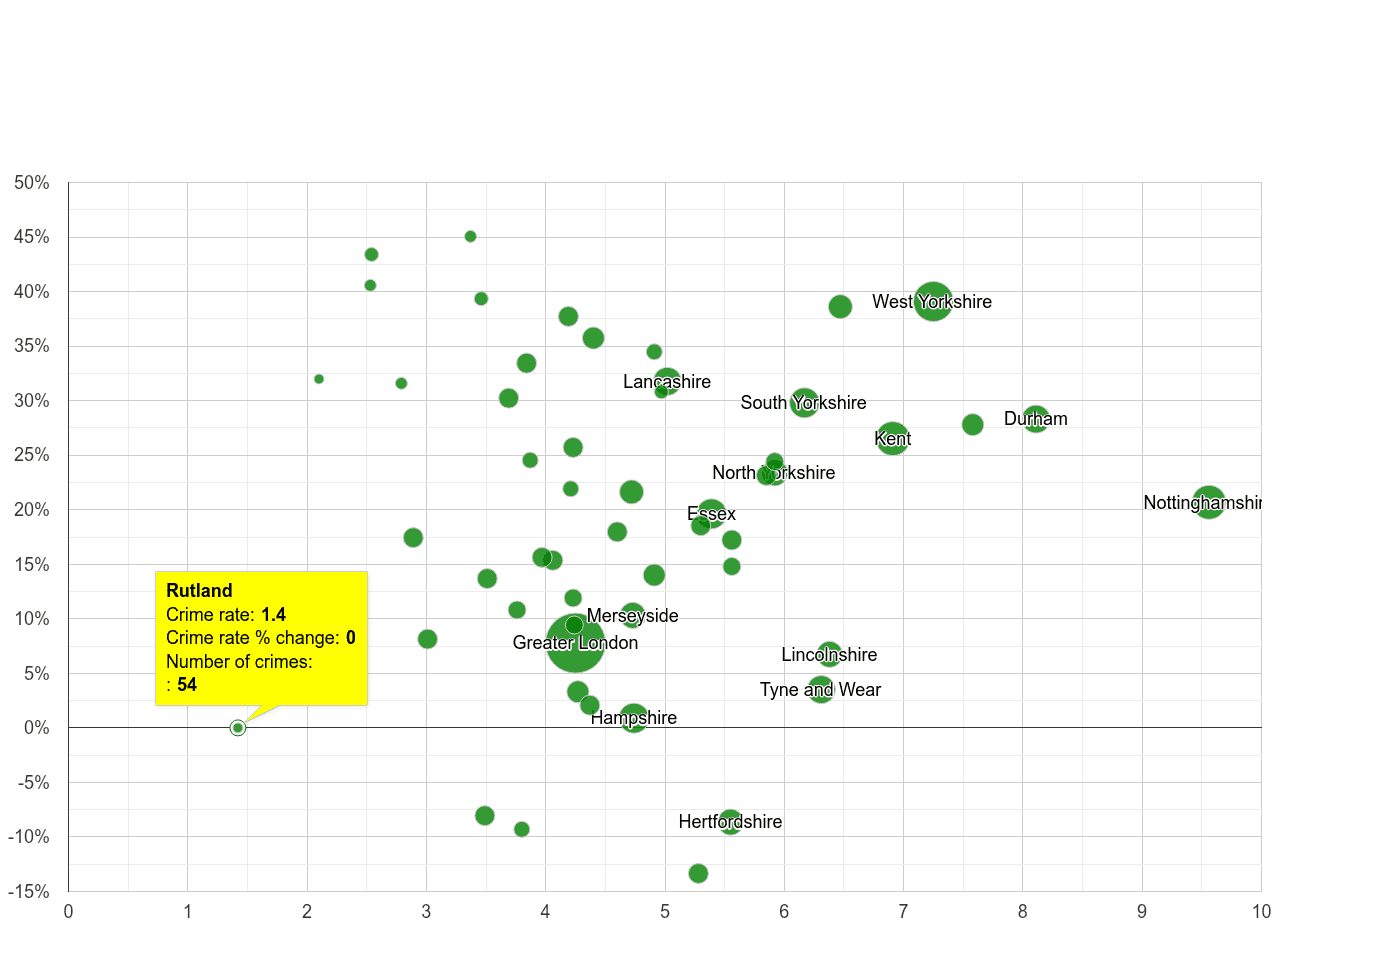 Rutland shoplifting crime rate compared to other counties